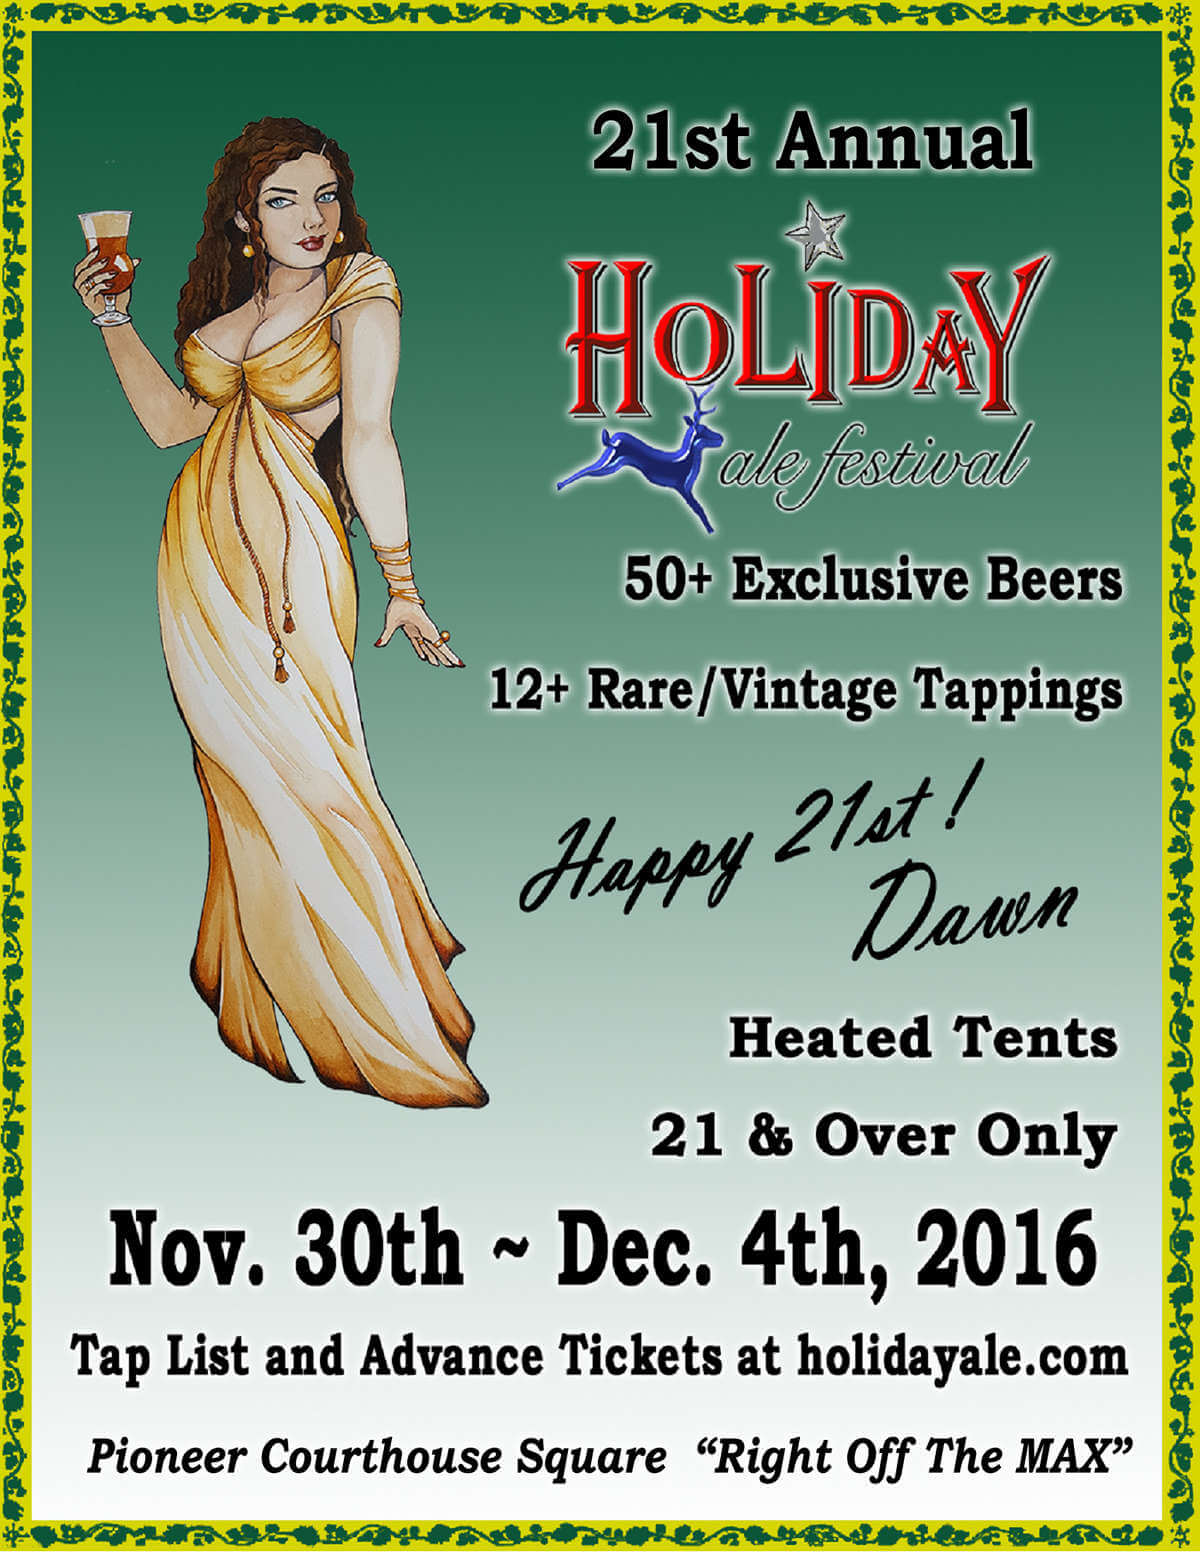 Holiday Ale Festival 2016 flyer